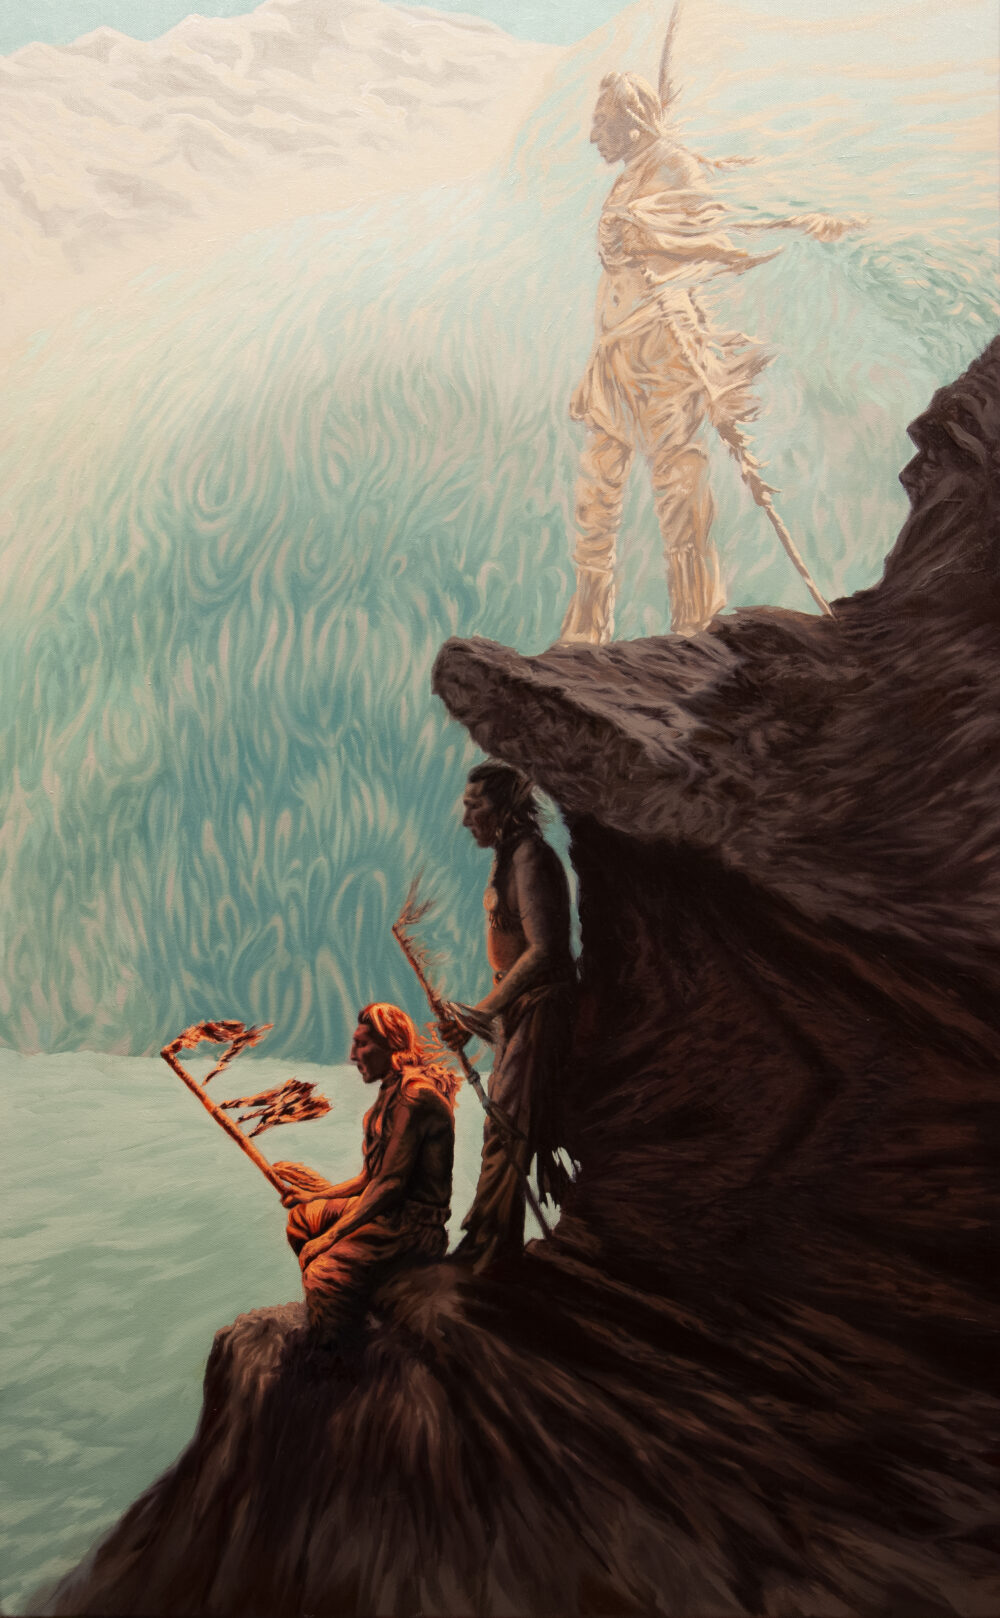 The Transient Self painting by Colin Hoisington